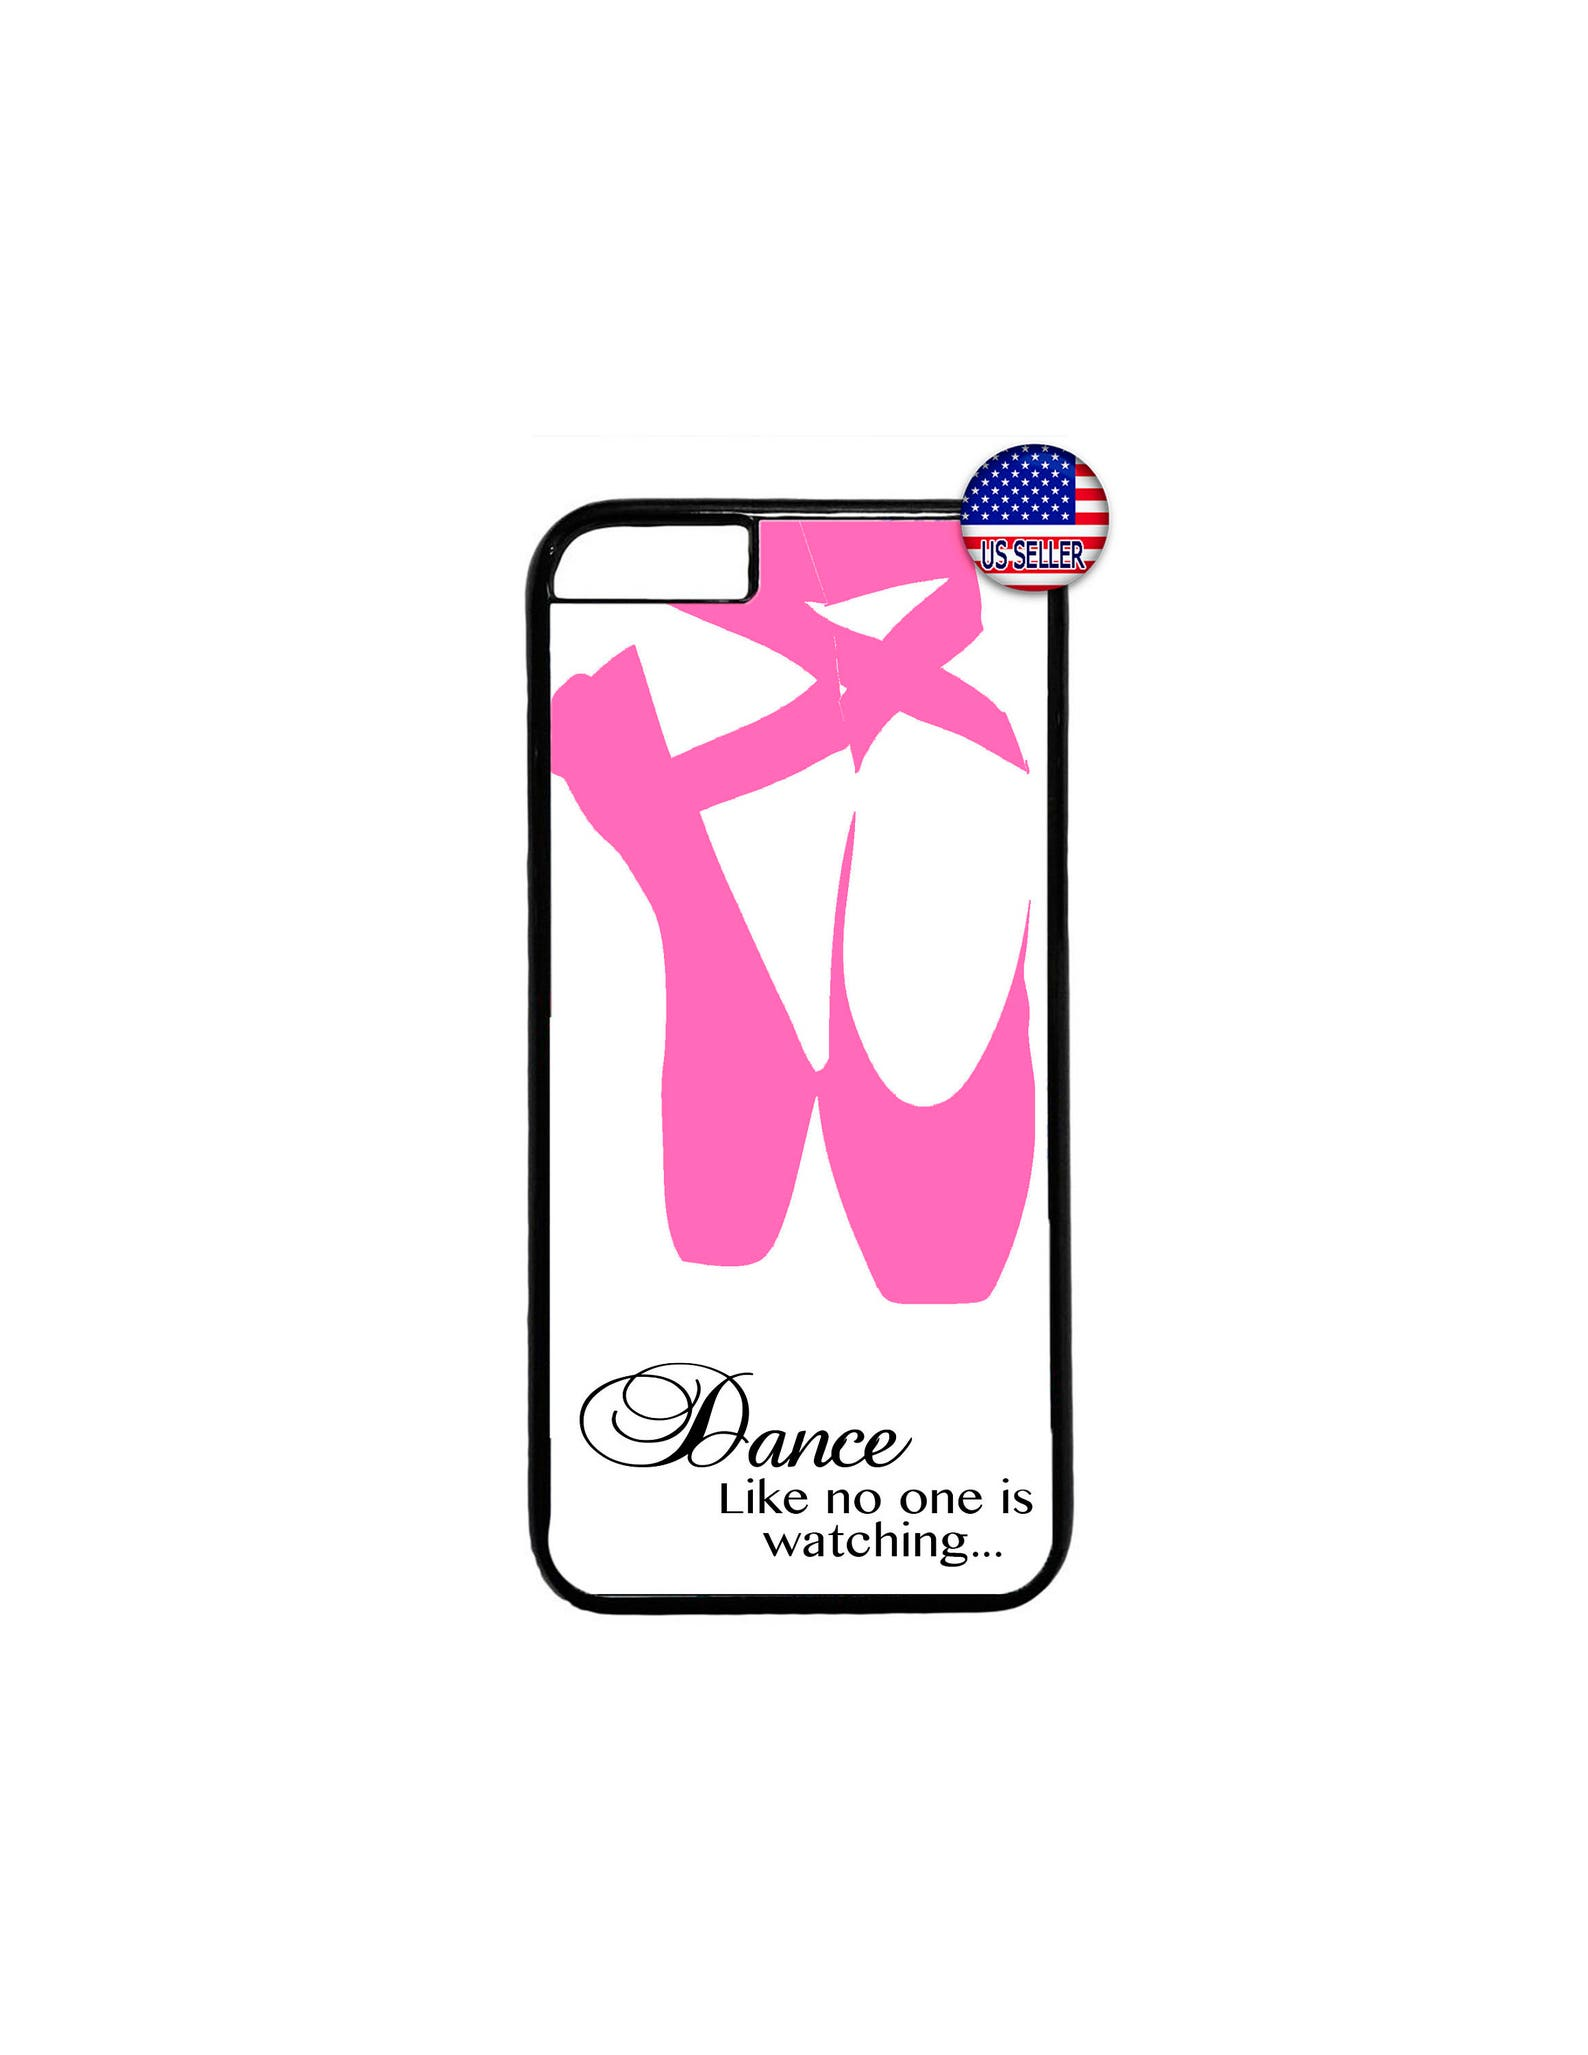 ballet ballerina dancer shoes hard rubber tpu slim case cover for iphone 8 7 6 6s plus x xs max 5 4 se ipod touch 4 5 6 7